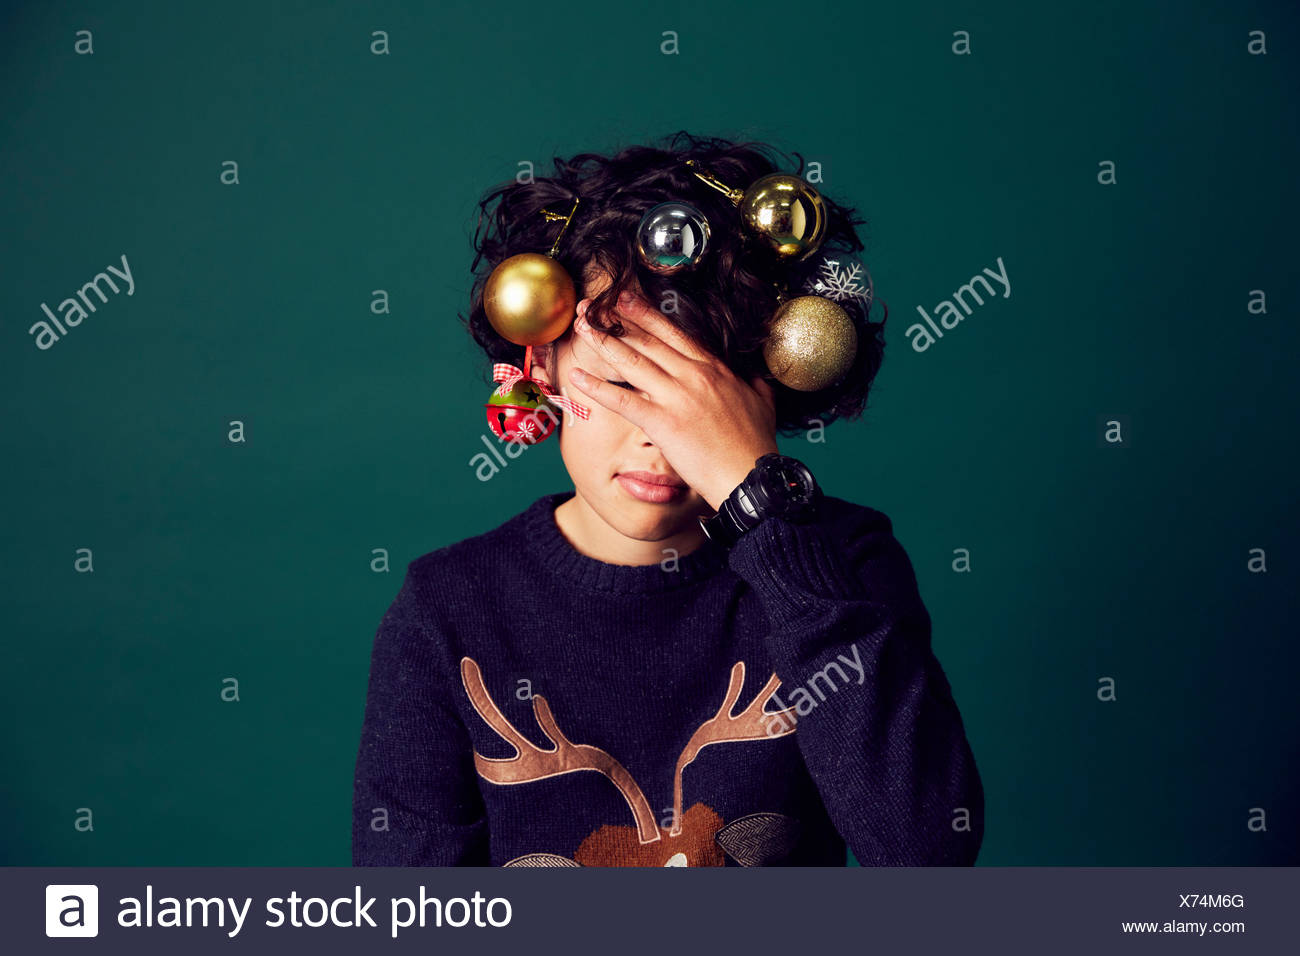 ef7f8e845f3 Teenage boy wearing Christmas jumper, and baubles in hair, covering ...